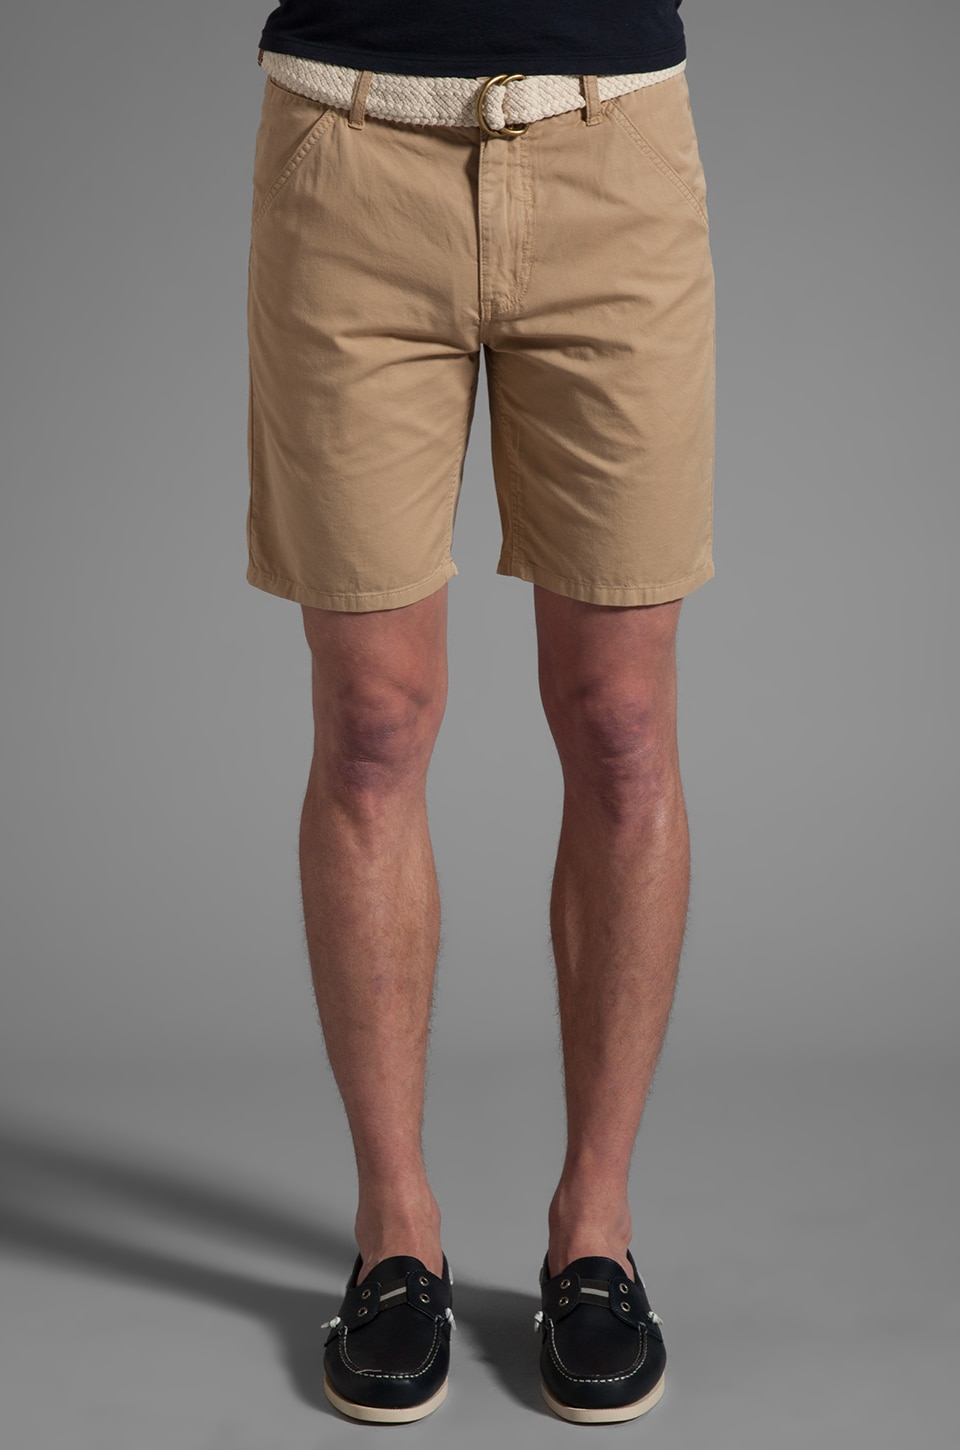 life/after/denim Maldives Chino Short in Khaki